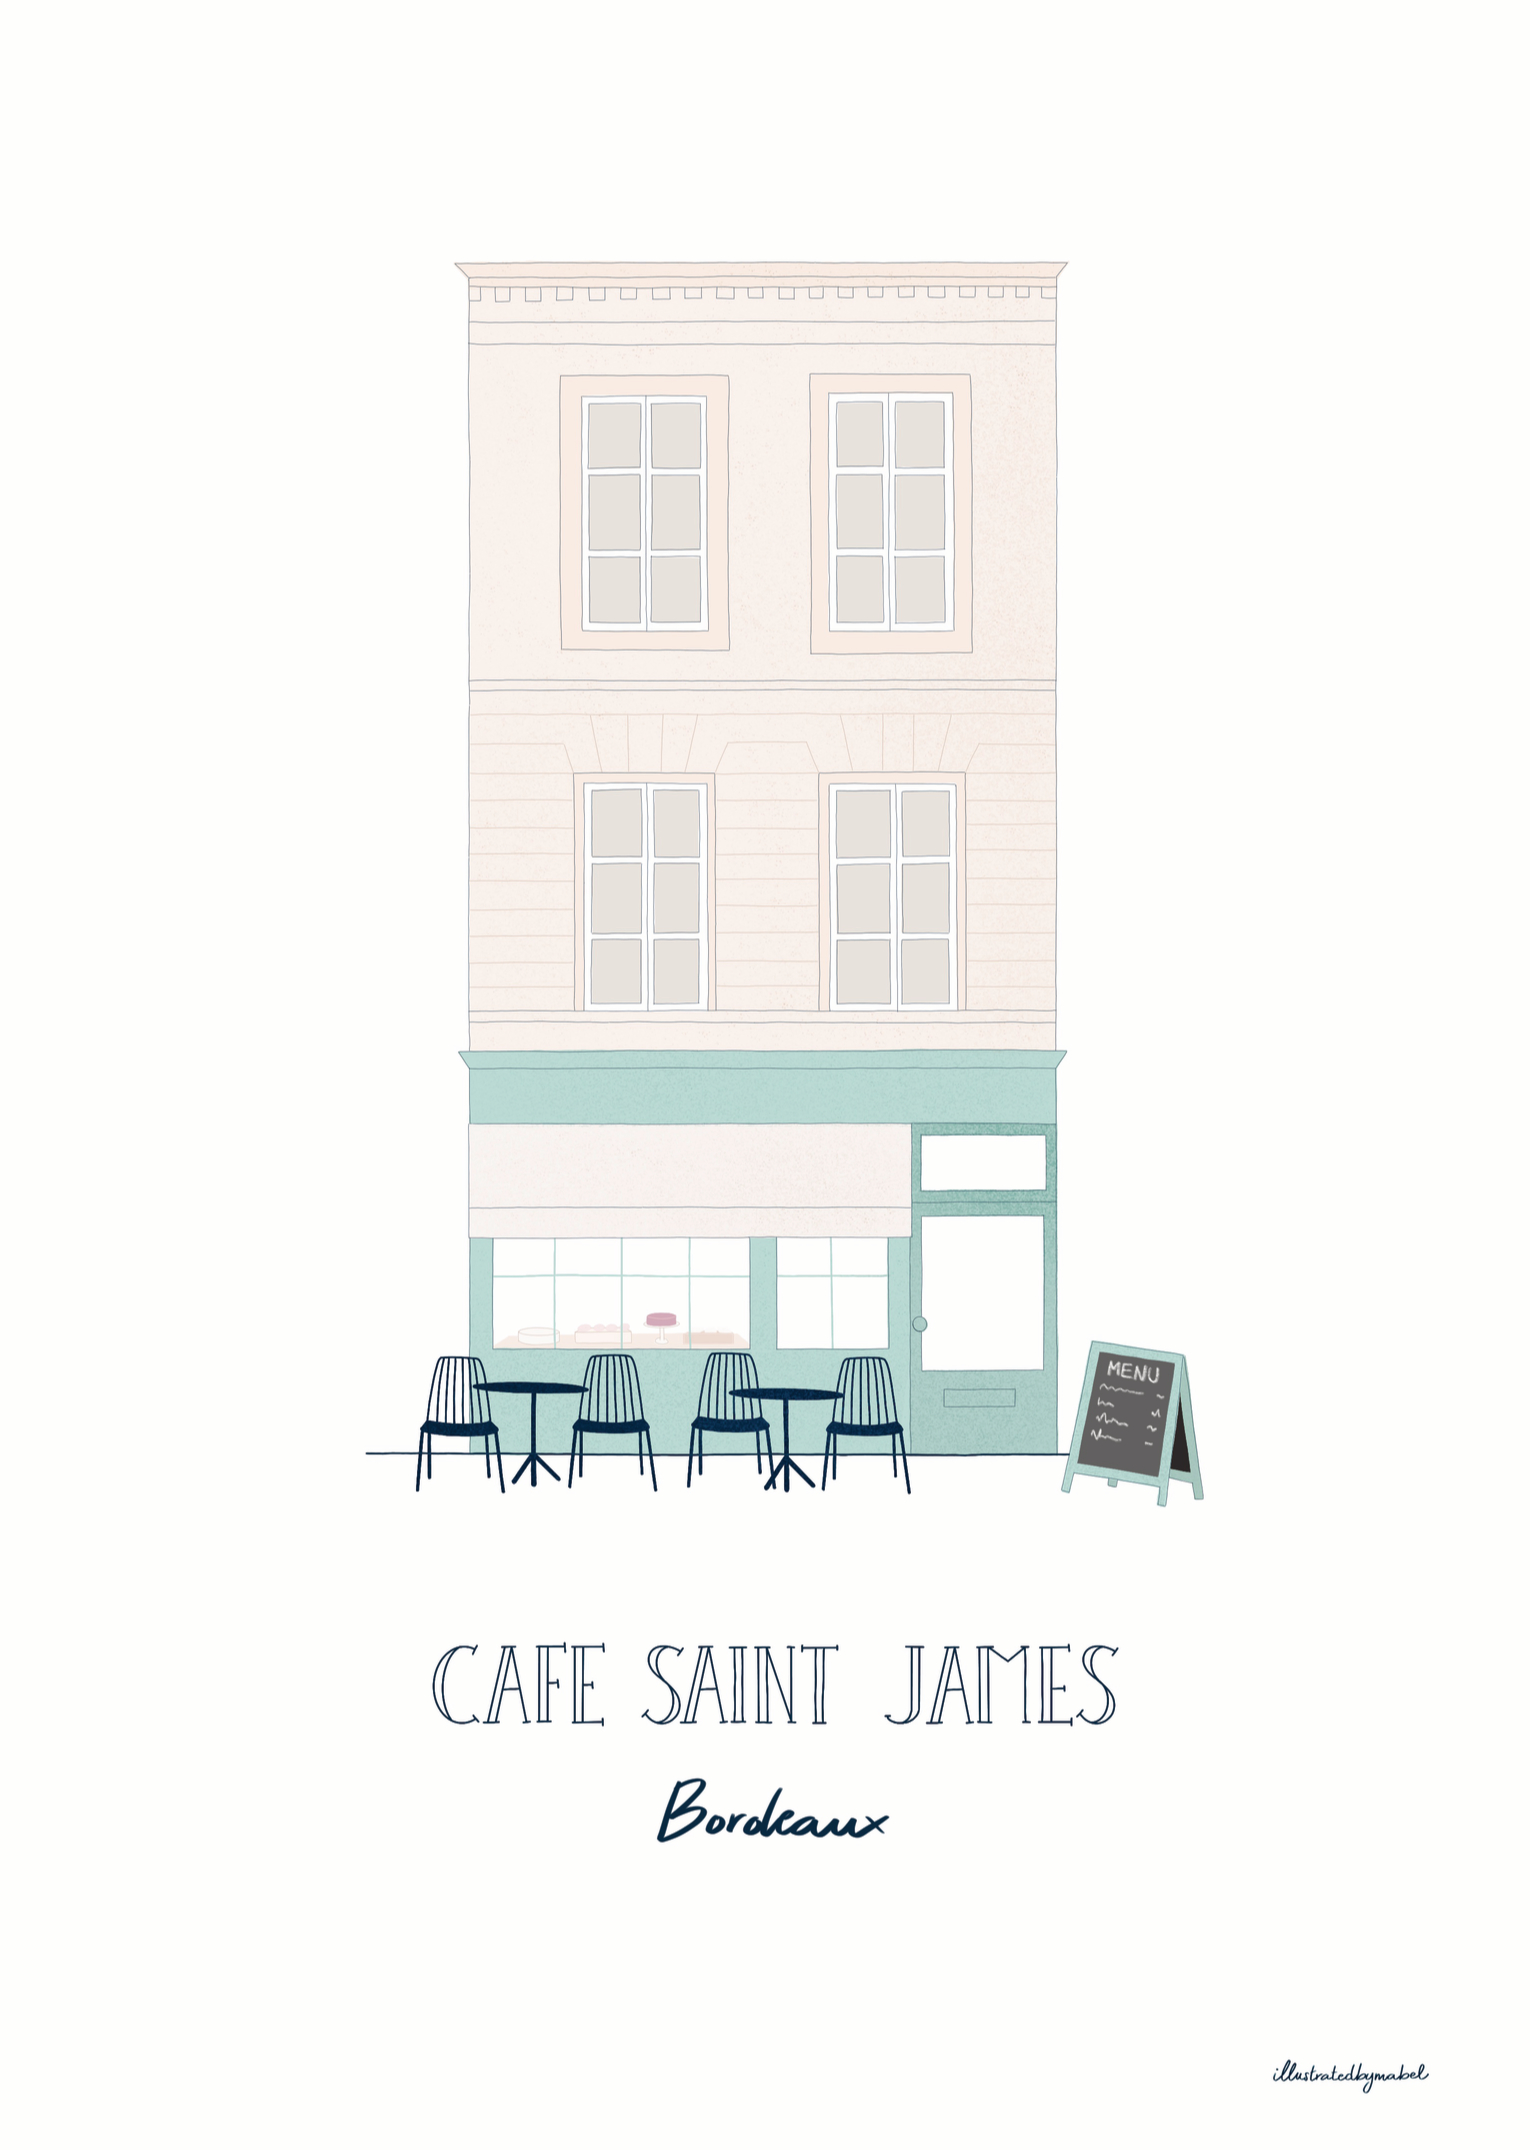 Illustration of a building with a cafe on the ground floor